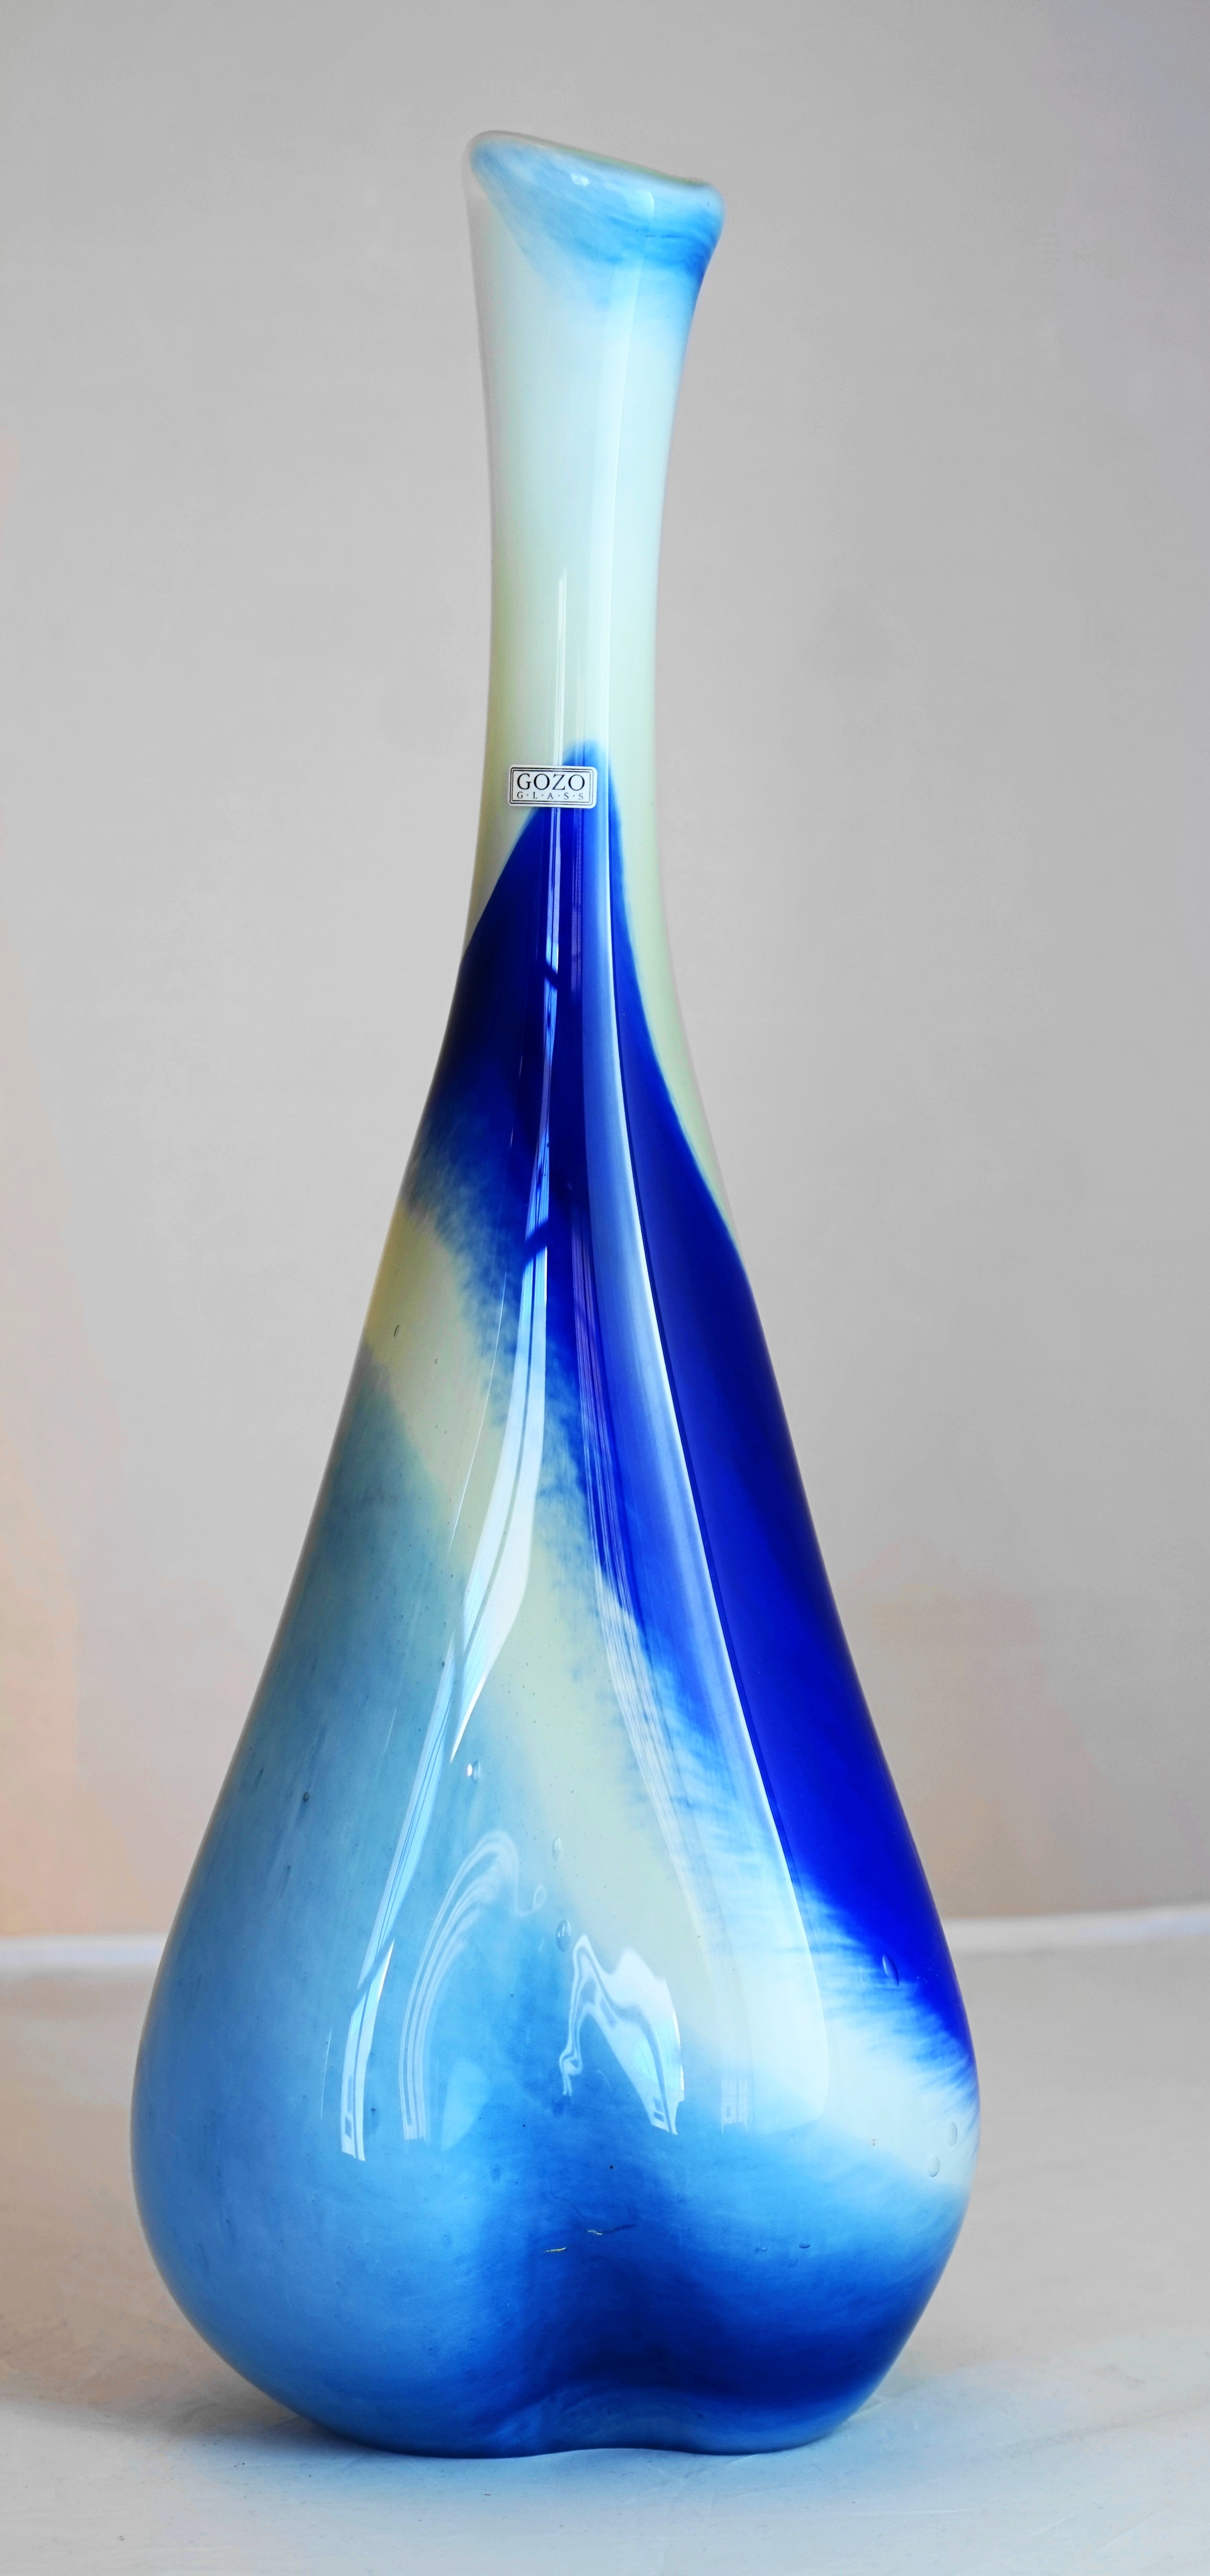 Shades of Blue LIMITED EDITION VASE - ONLY ONE AVAILABLE